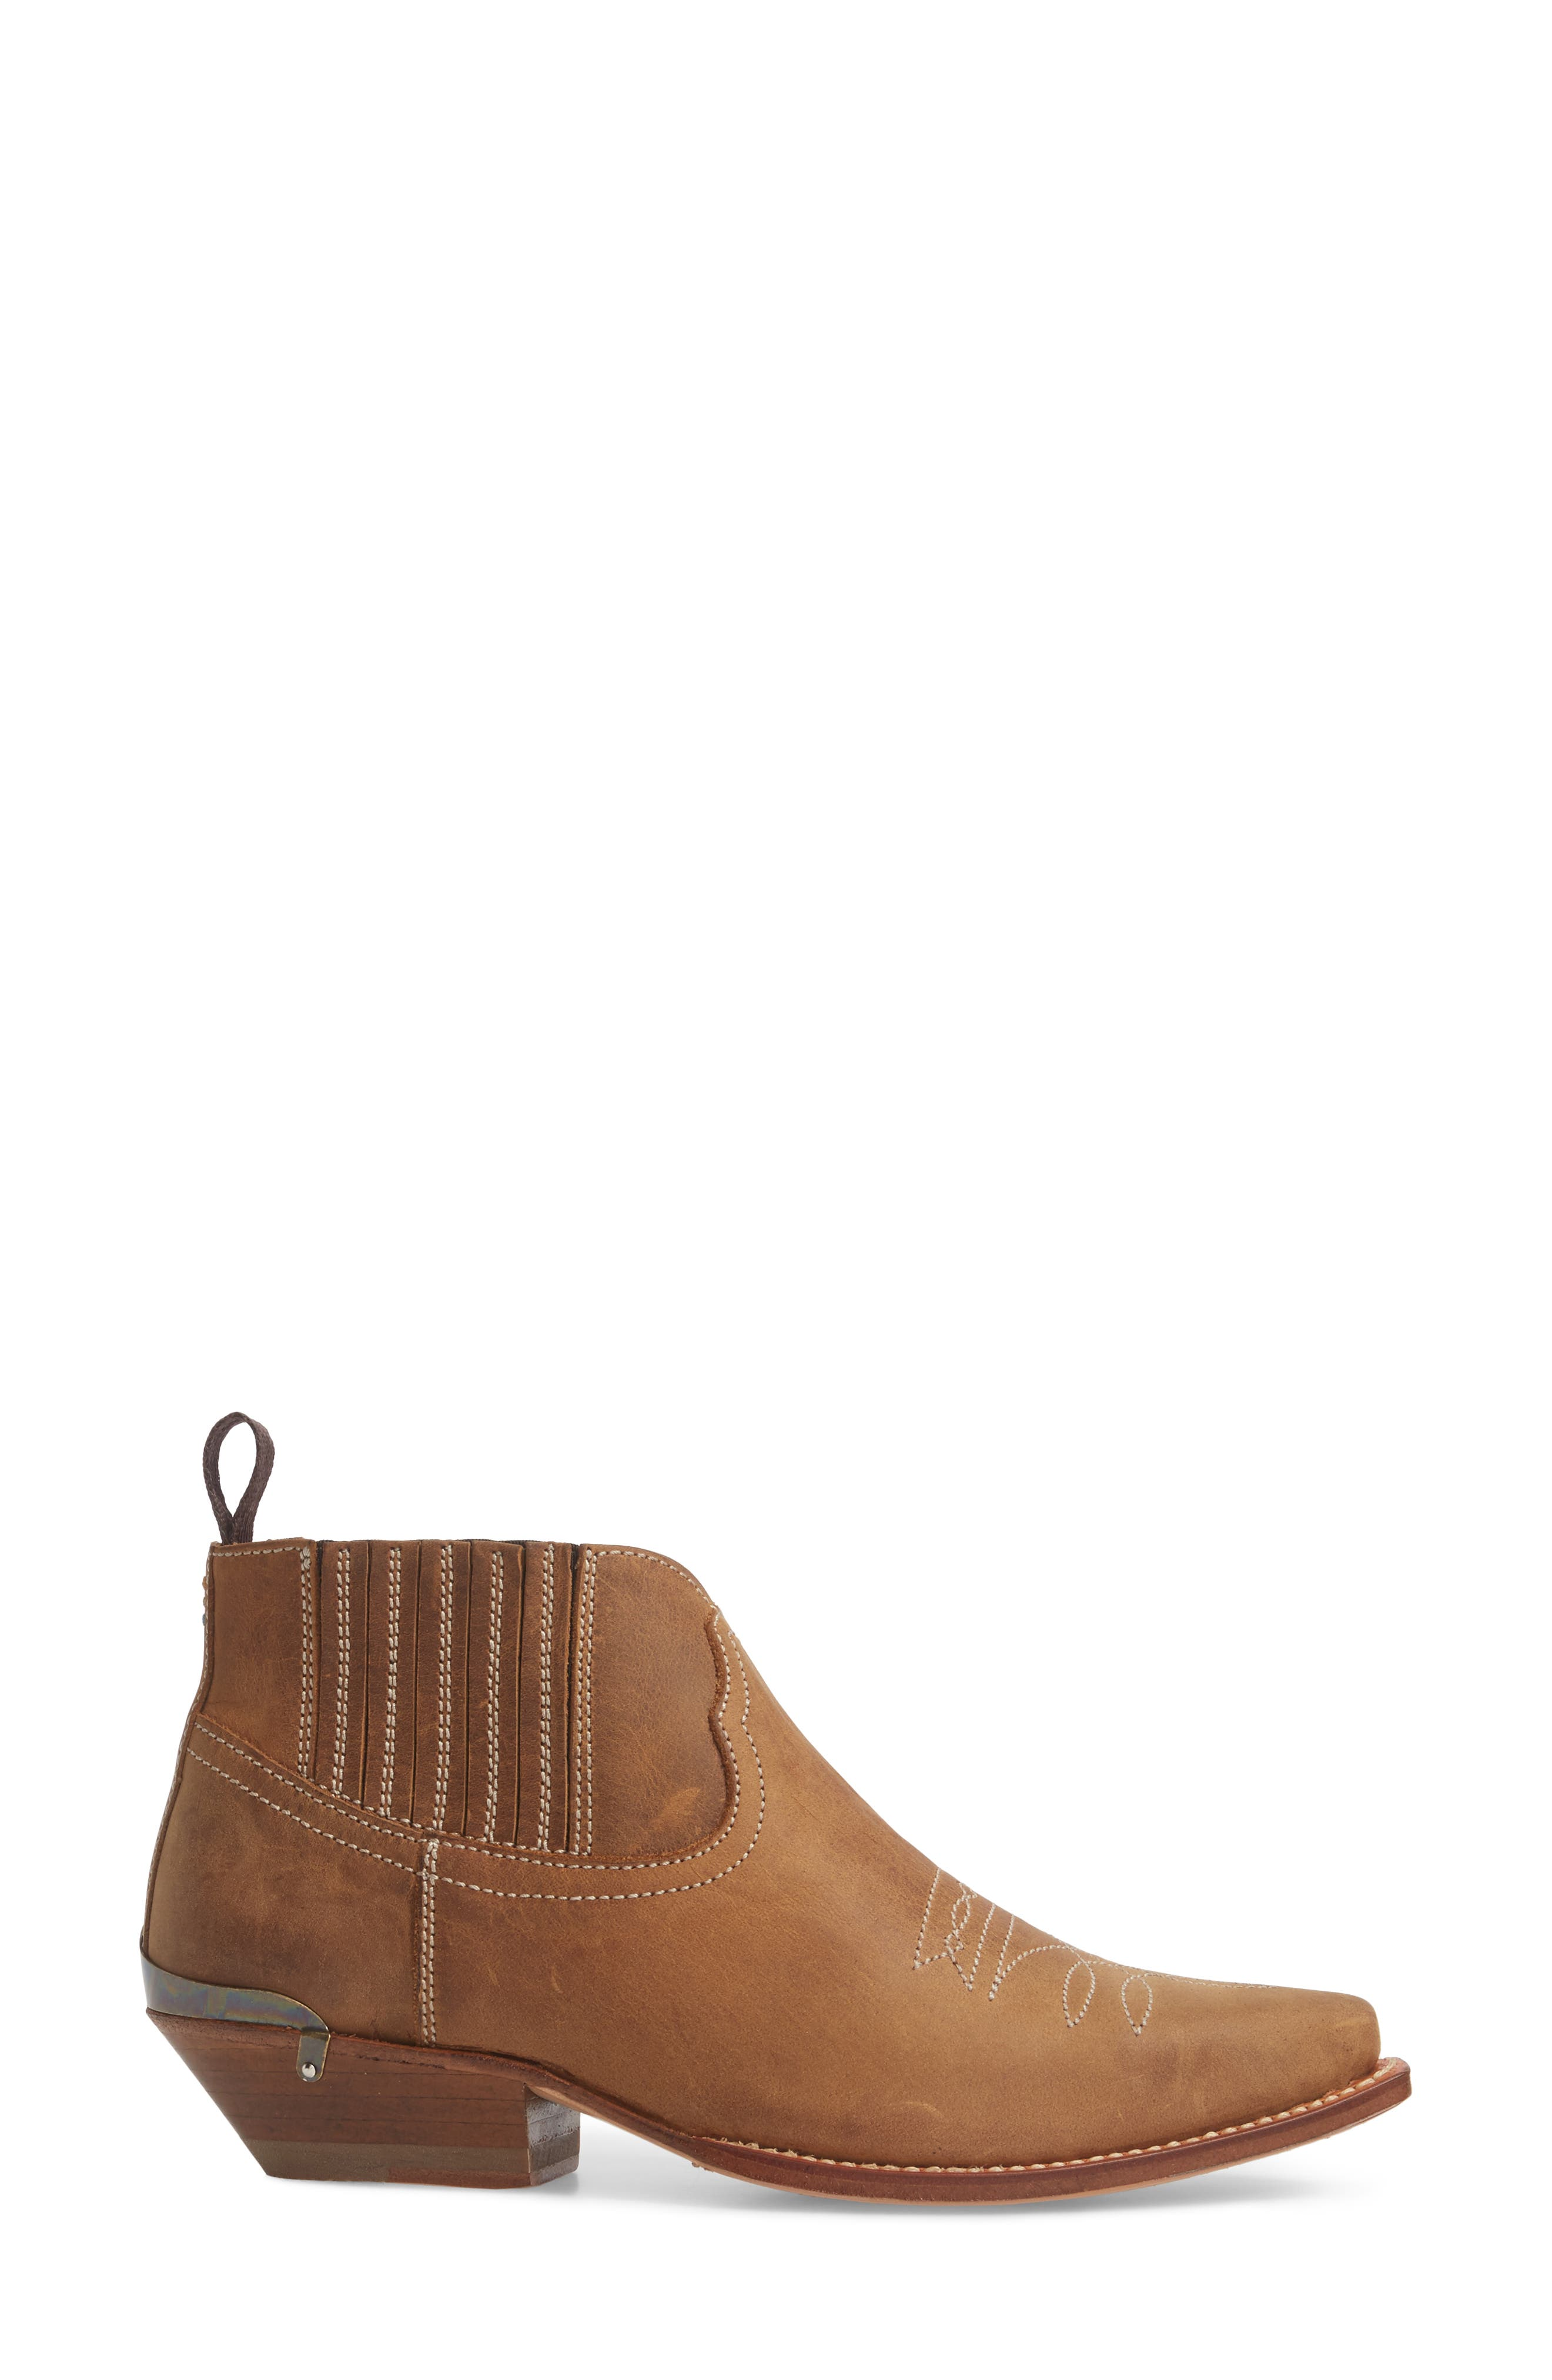 Jalon Western Bootie,                             Alternate thumbnail 3, color,                             200